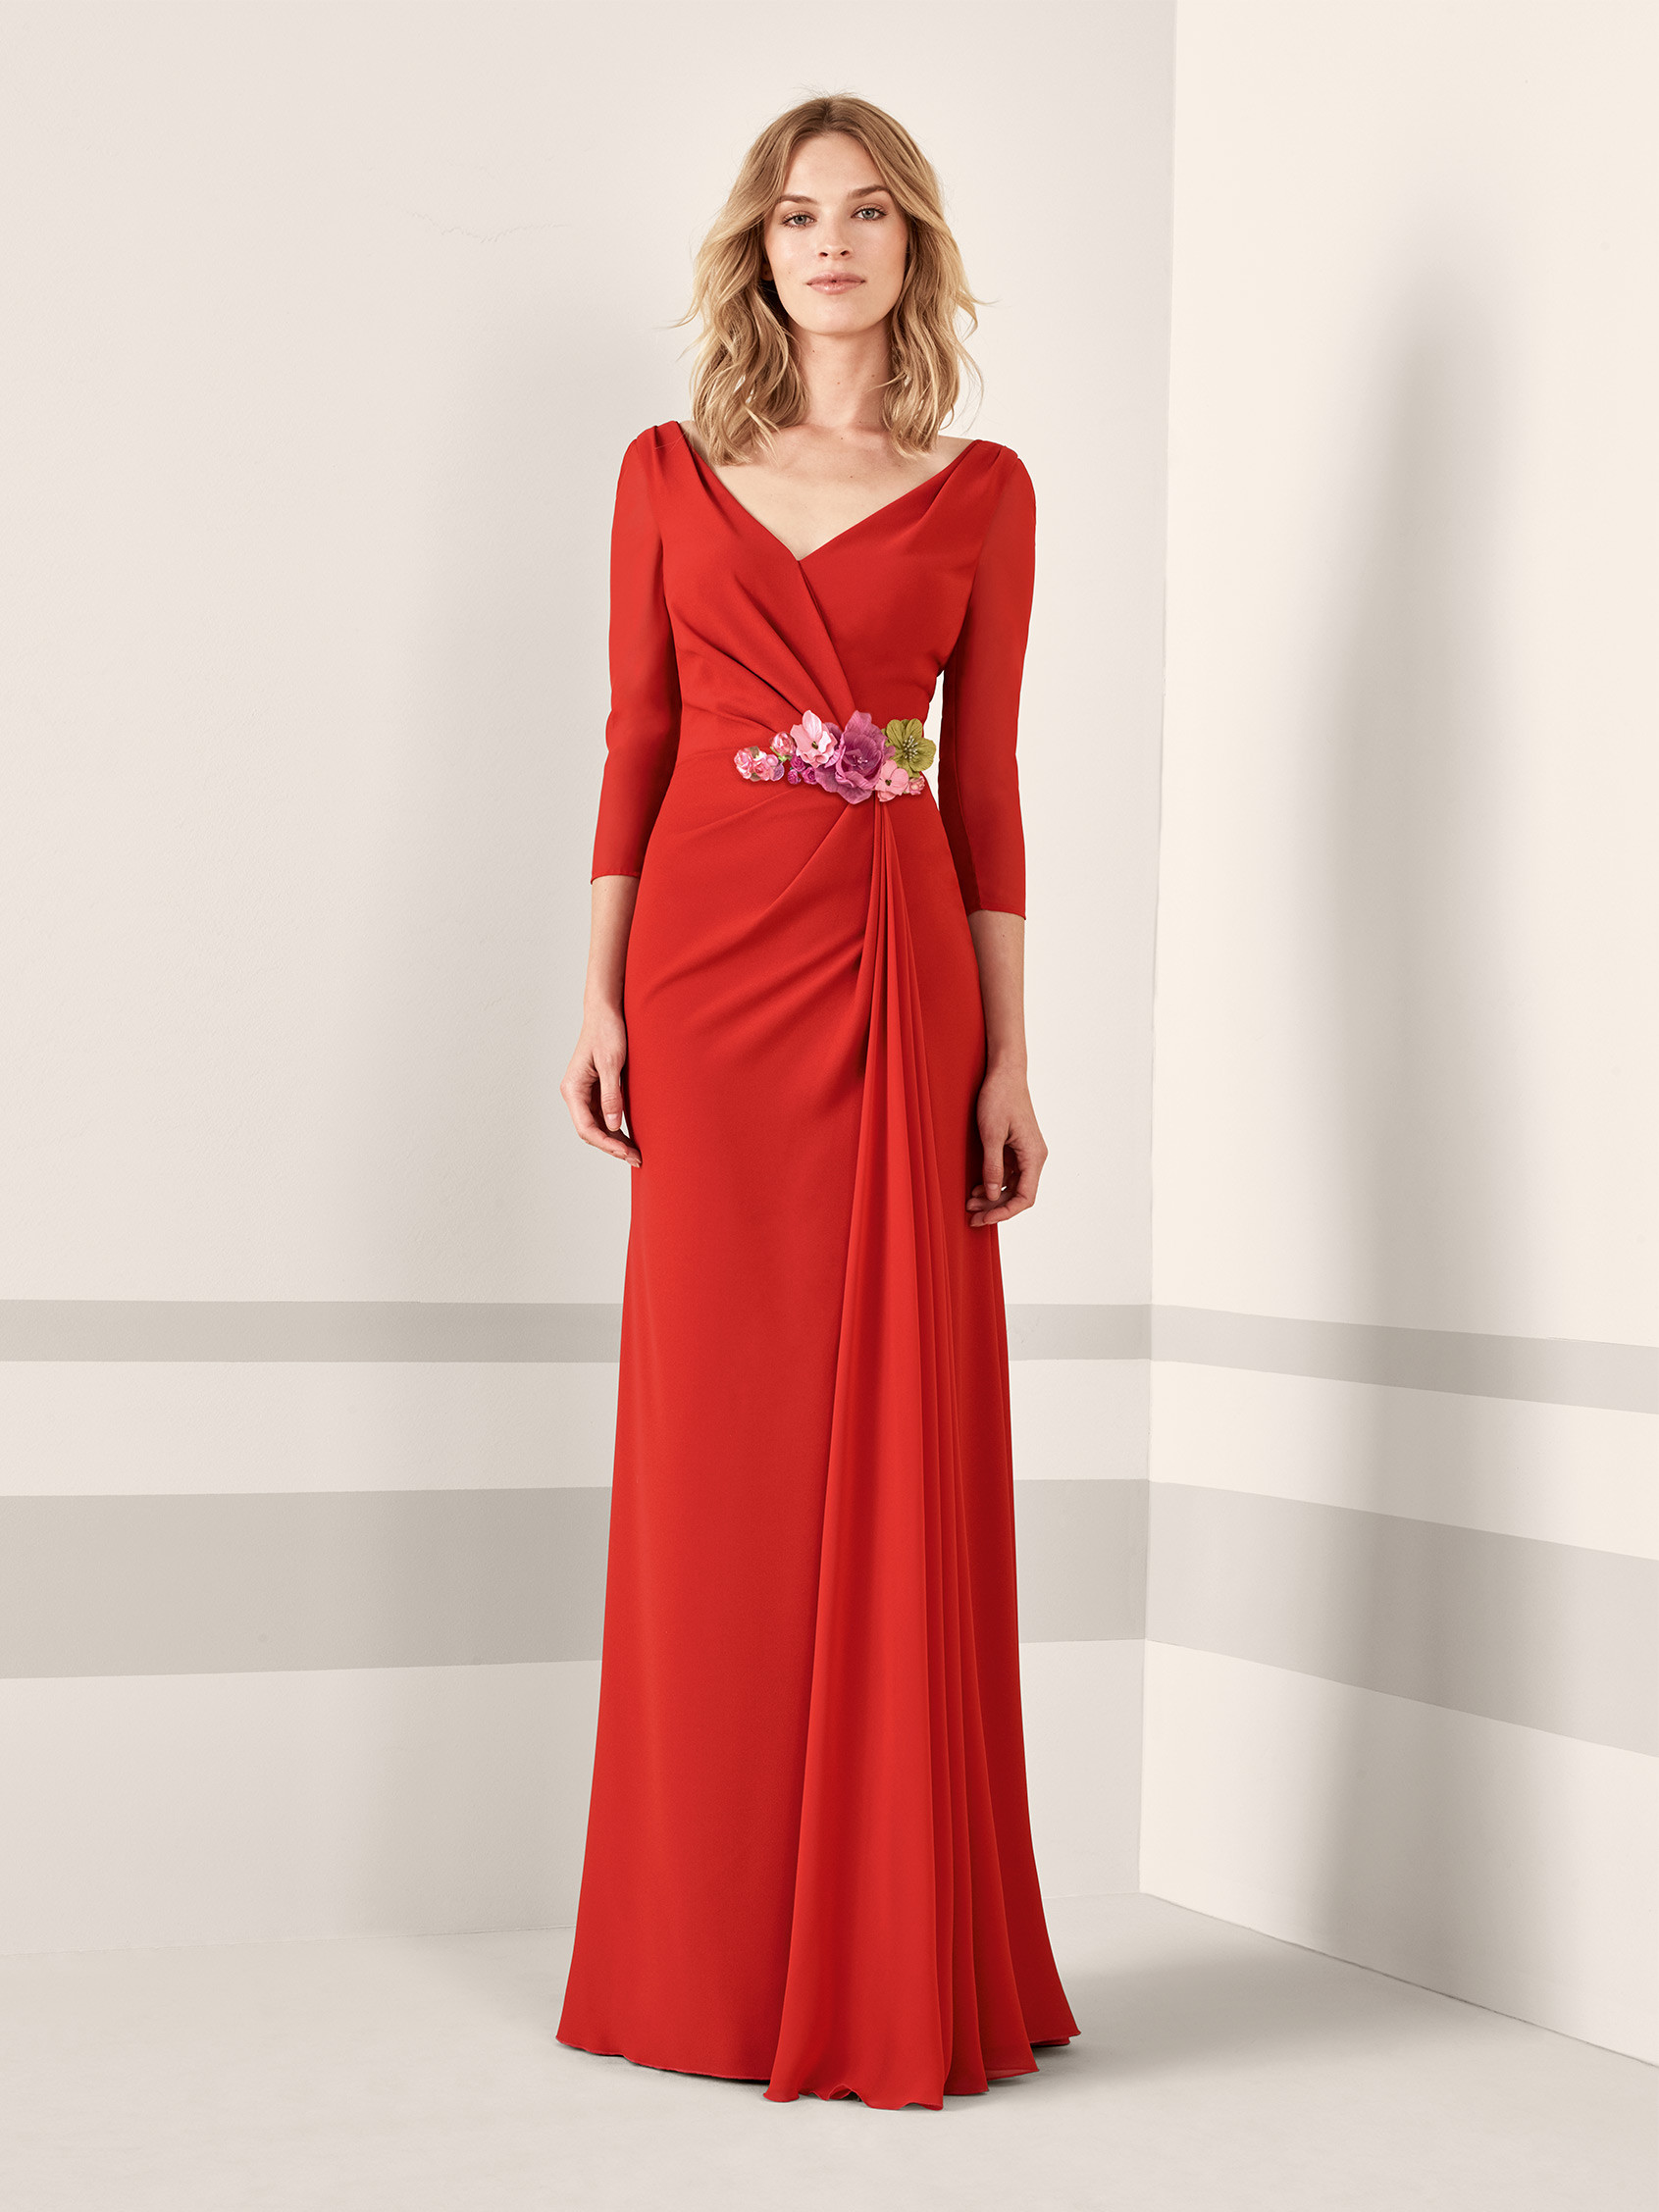 Cocktail Dresses with Flowing Sleeves